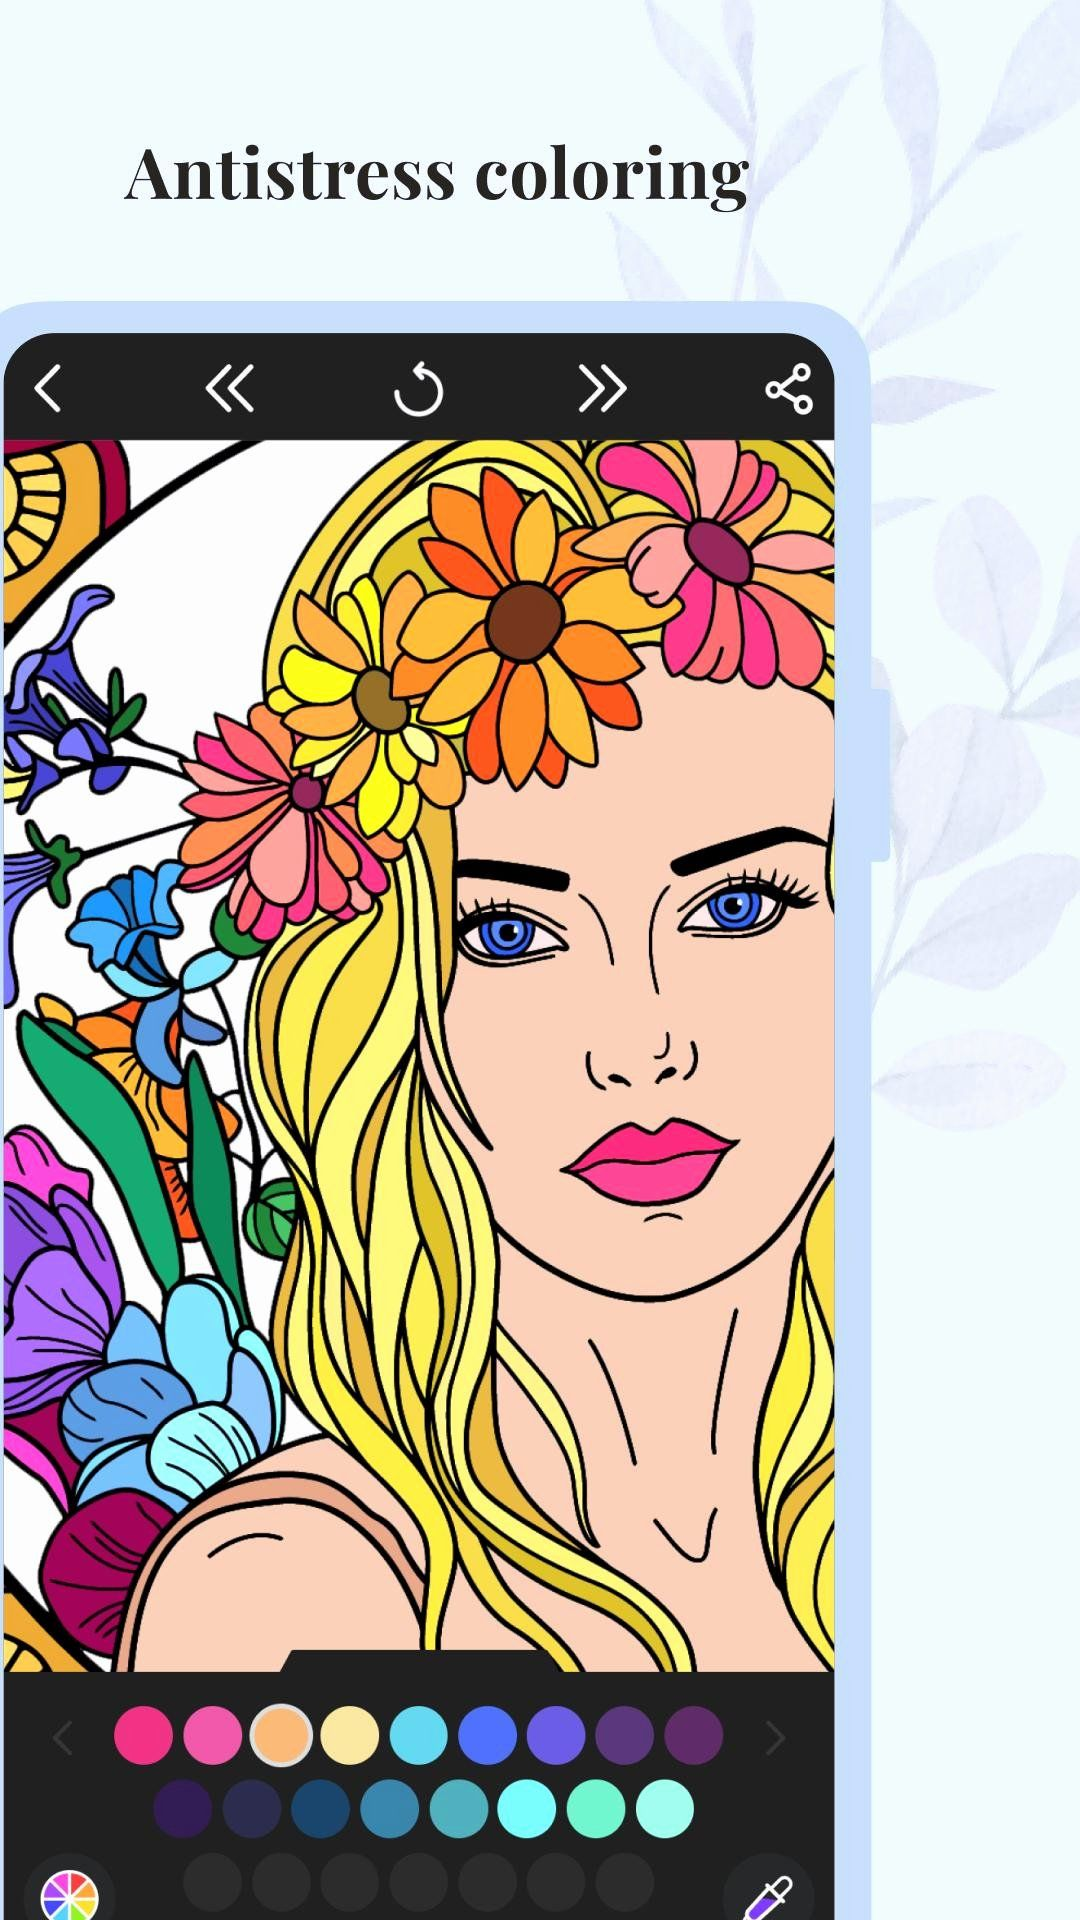 Coloring Book For Me And Mandala Unique Coloring Book For Me Mandala Antistress For Android In 2020 Coloring Books Halloween Coloring Book Mandala